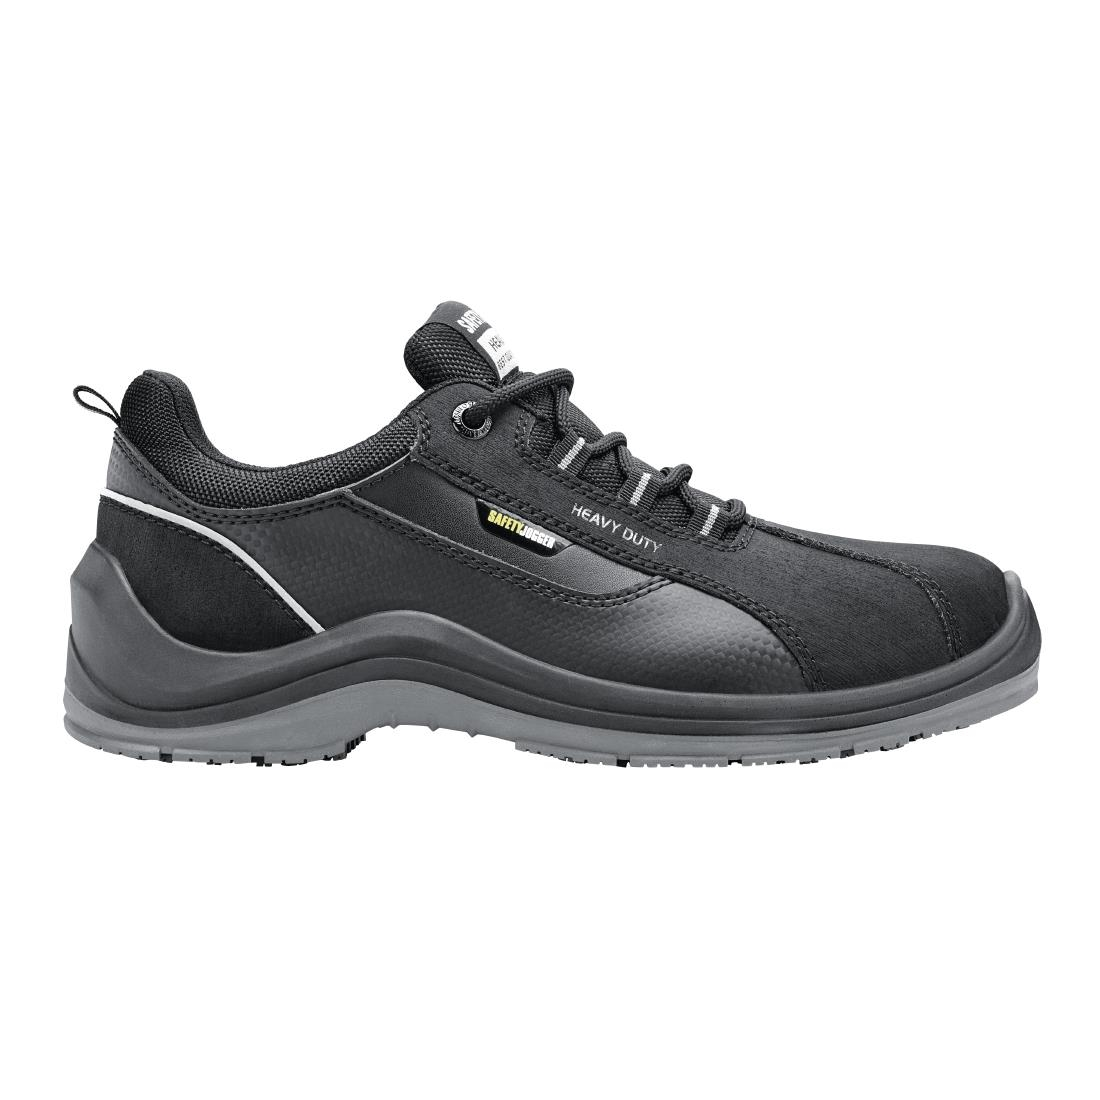 Shoes For Crews Advance 81 Safety Shoes Black Size 48